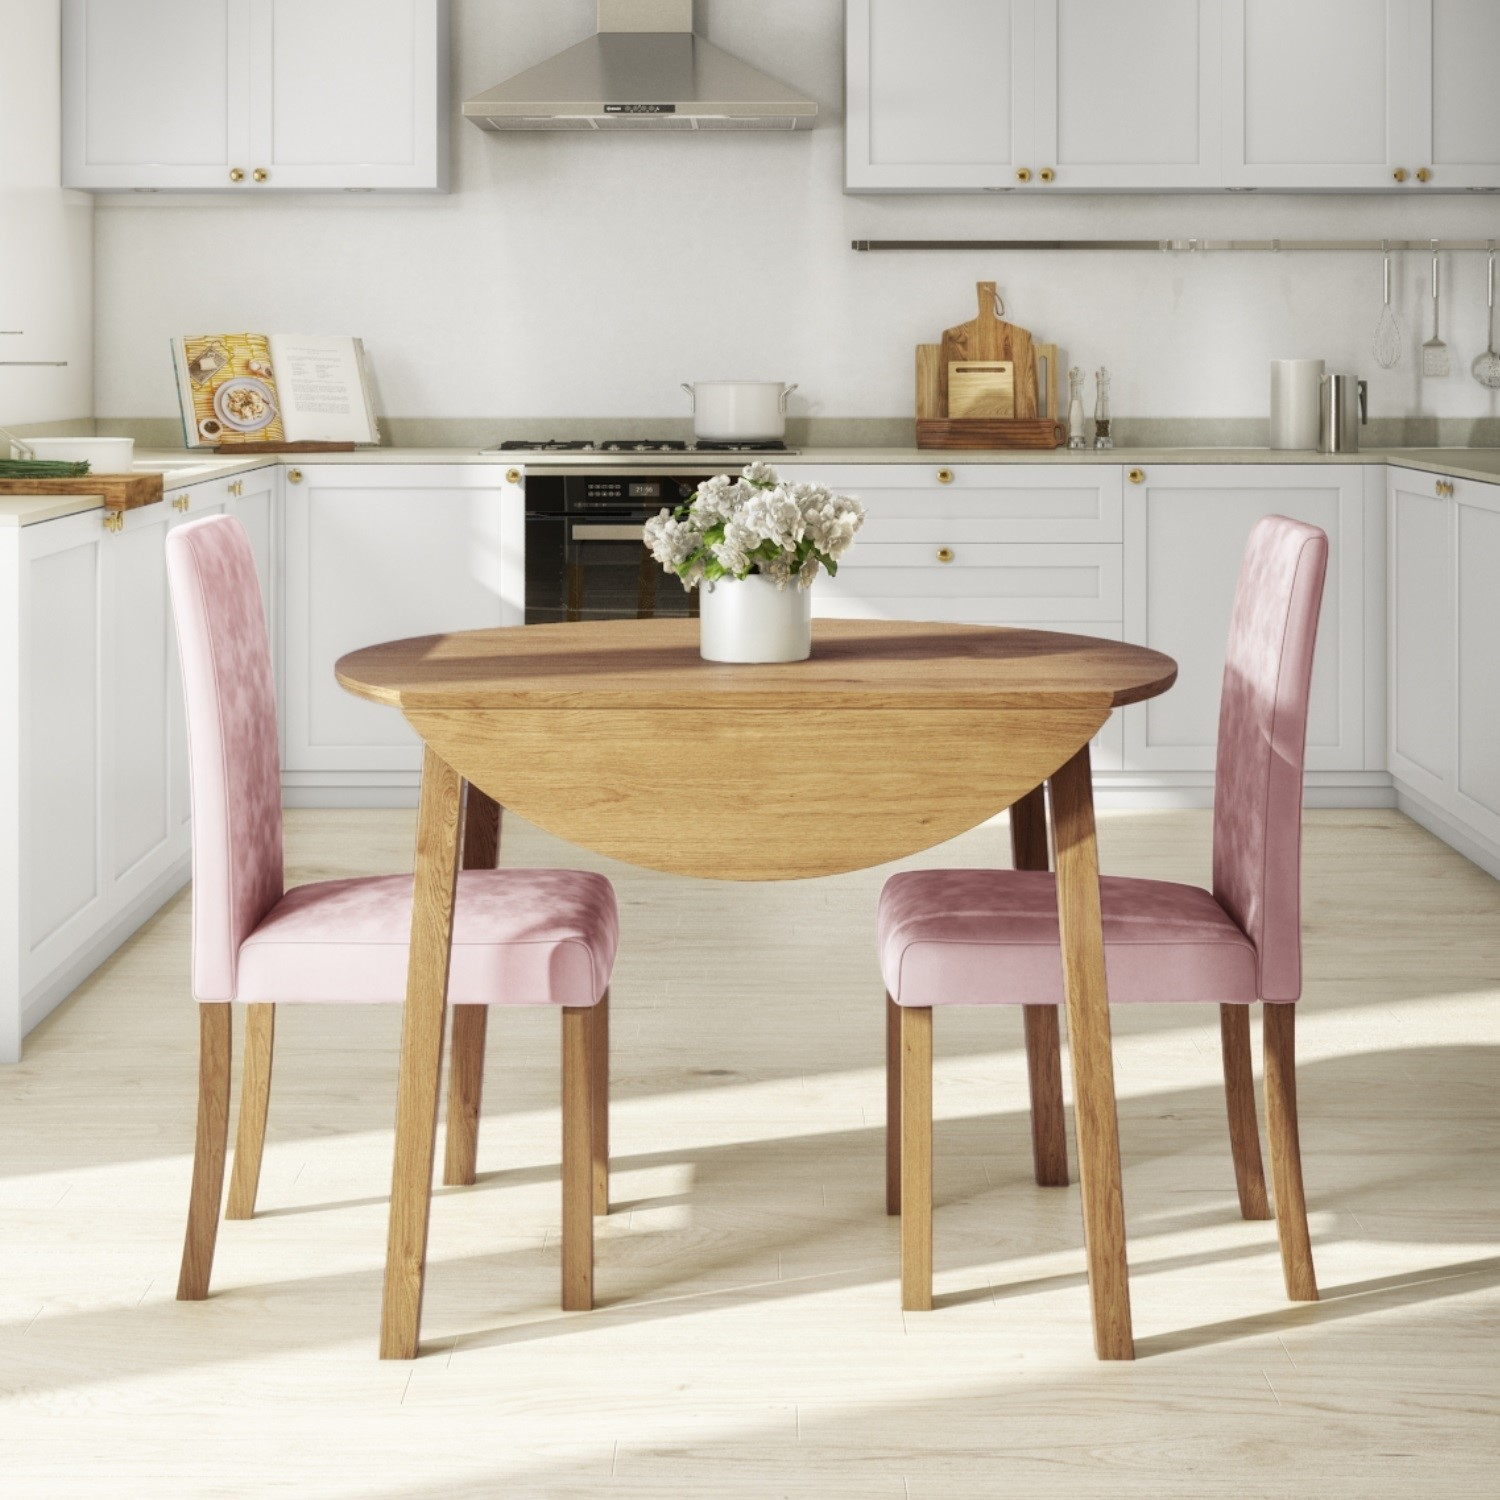 Round Oak Drop Leaf Dining Table & 2 Pink Velvet Chairs